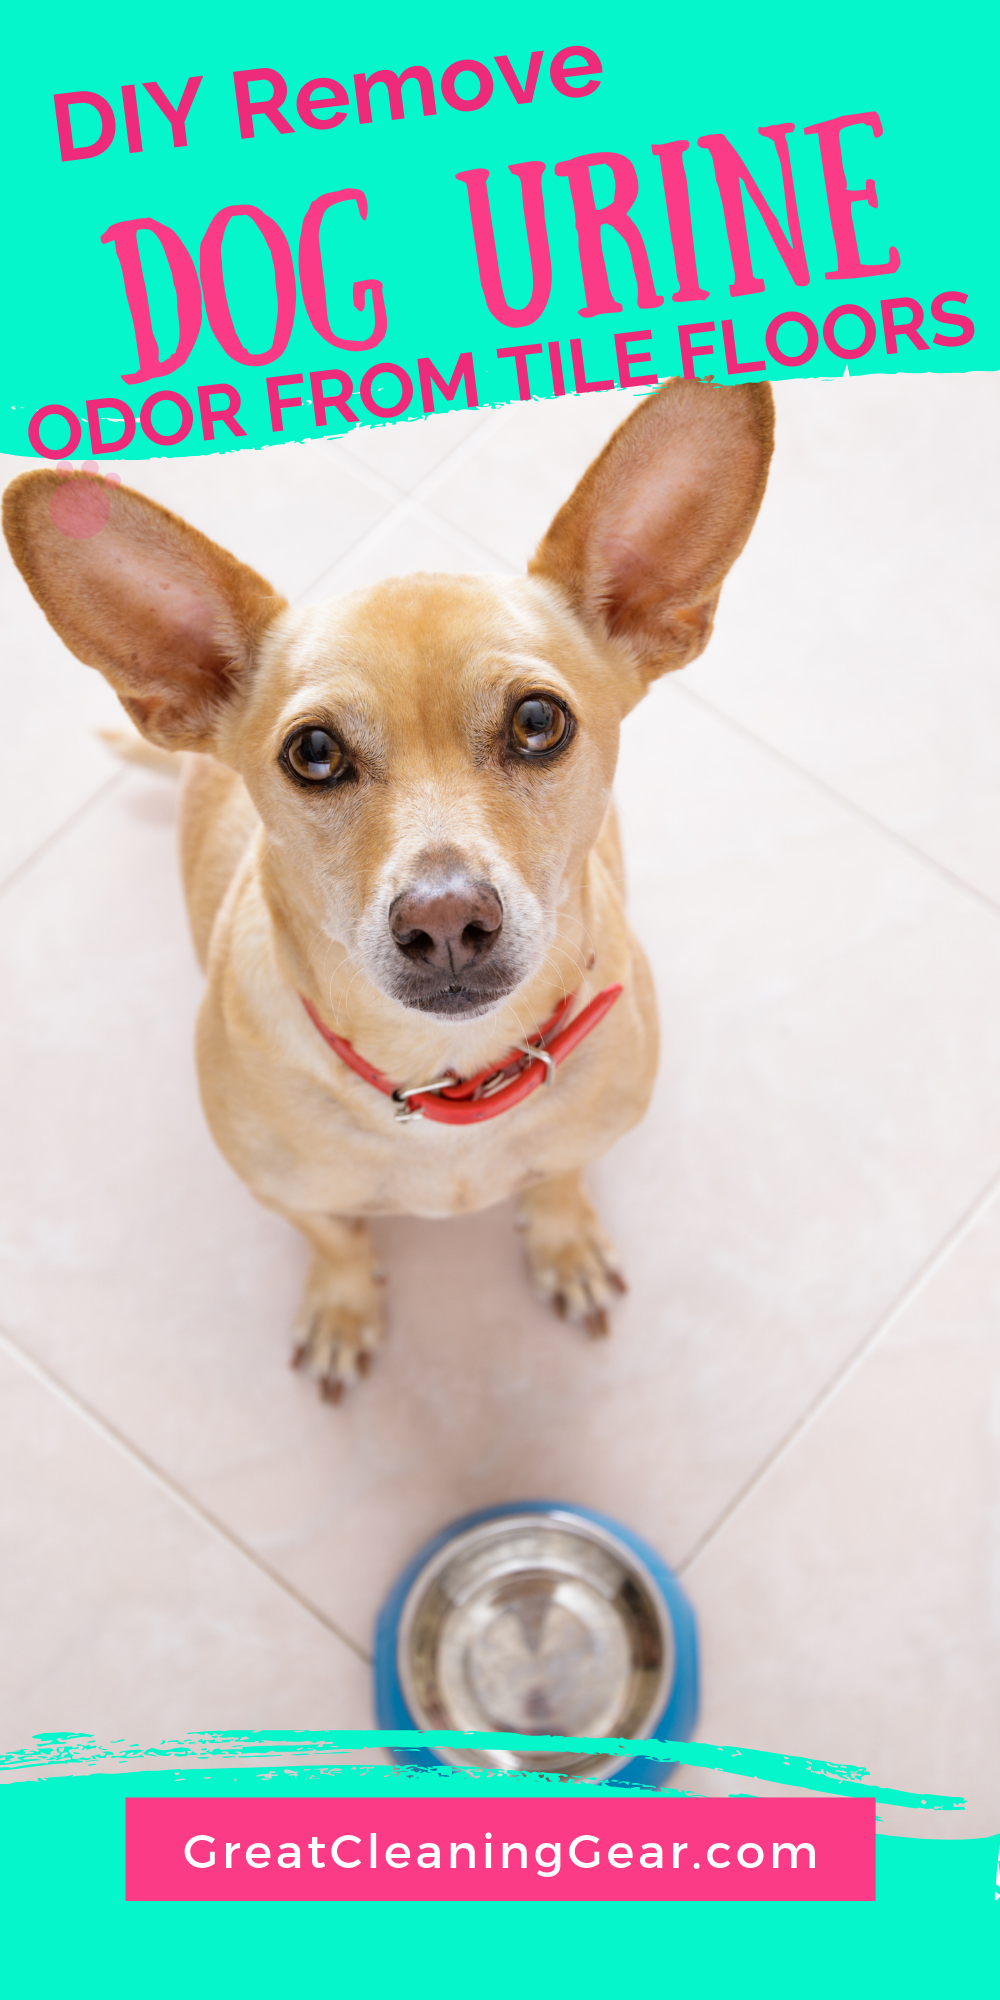 Dog Urine Odor From Tile Floors